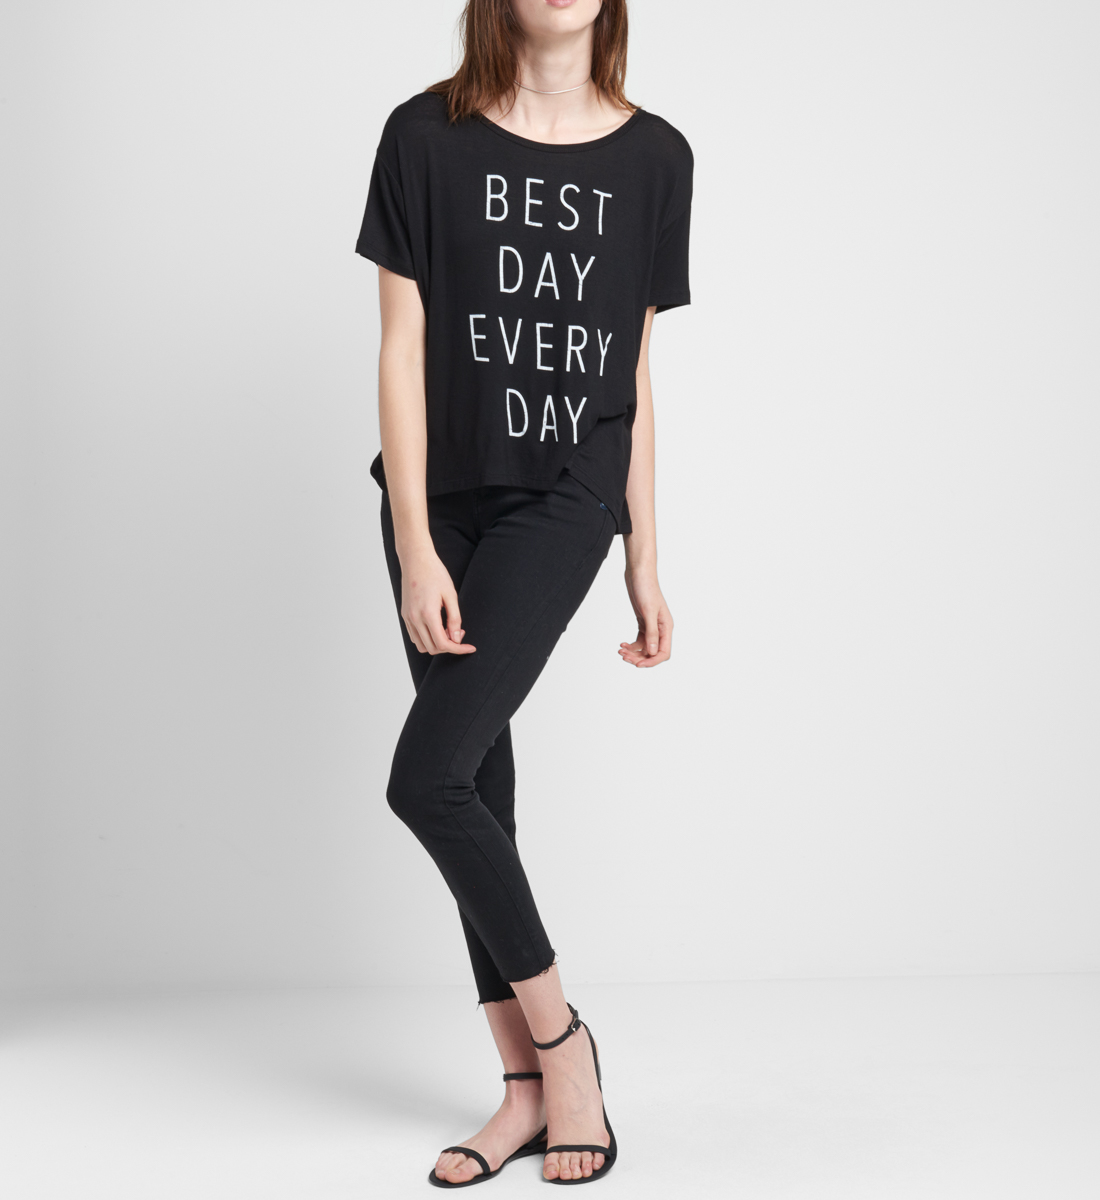 Best Day Graphic Tee Side